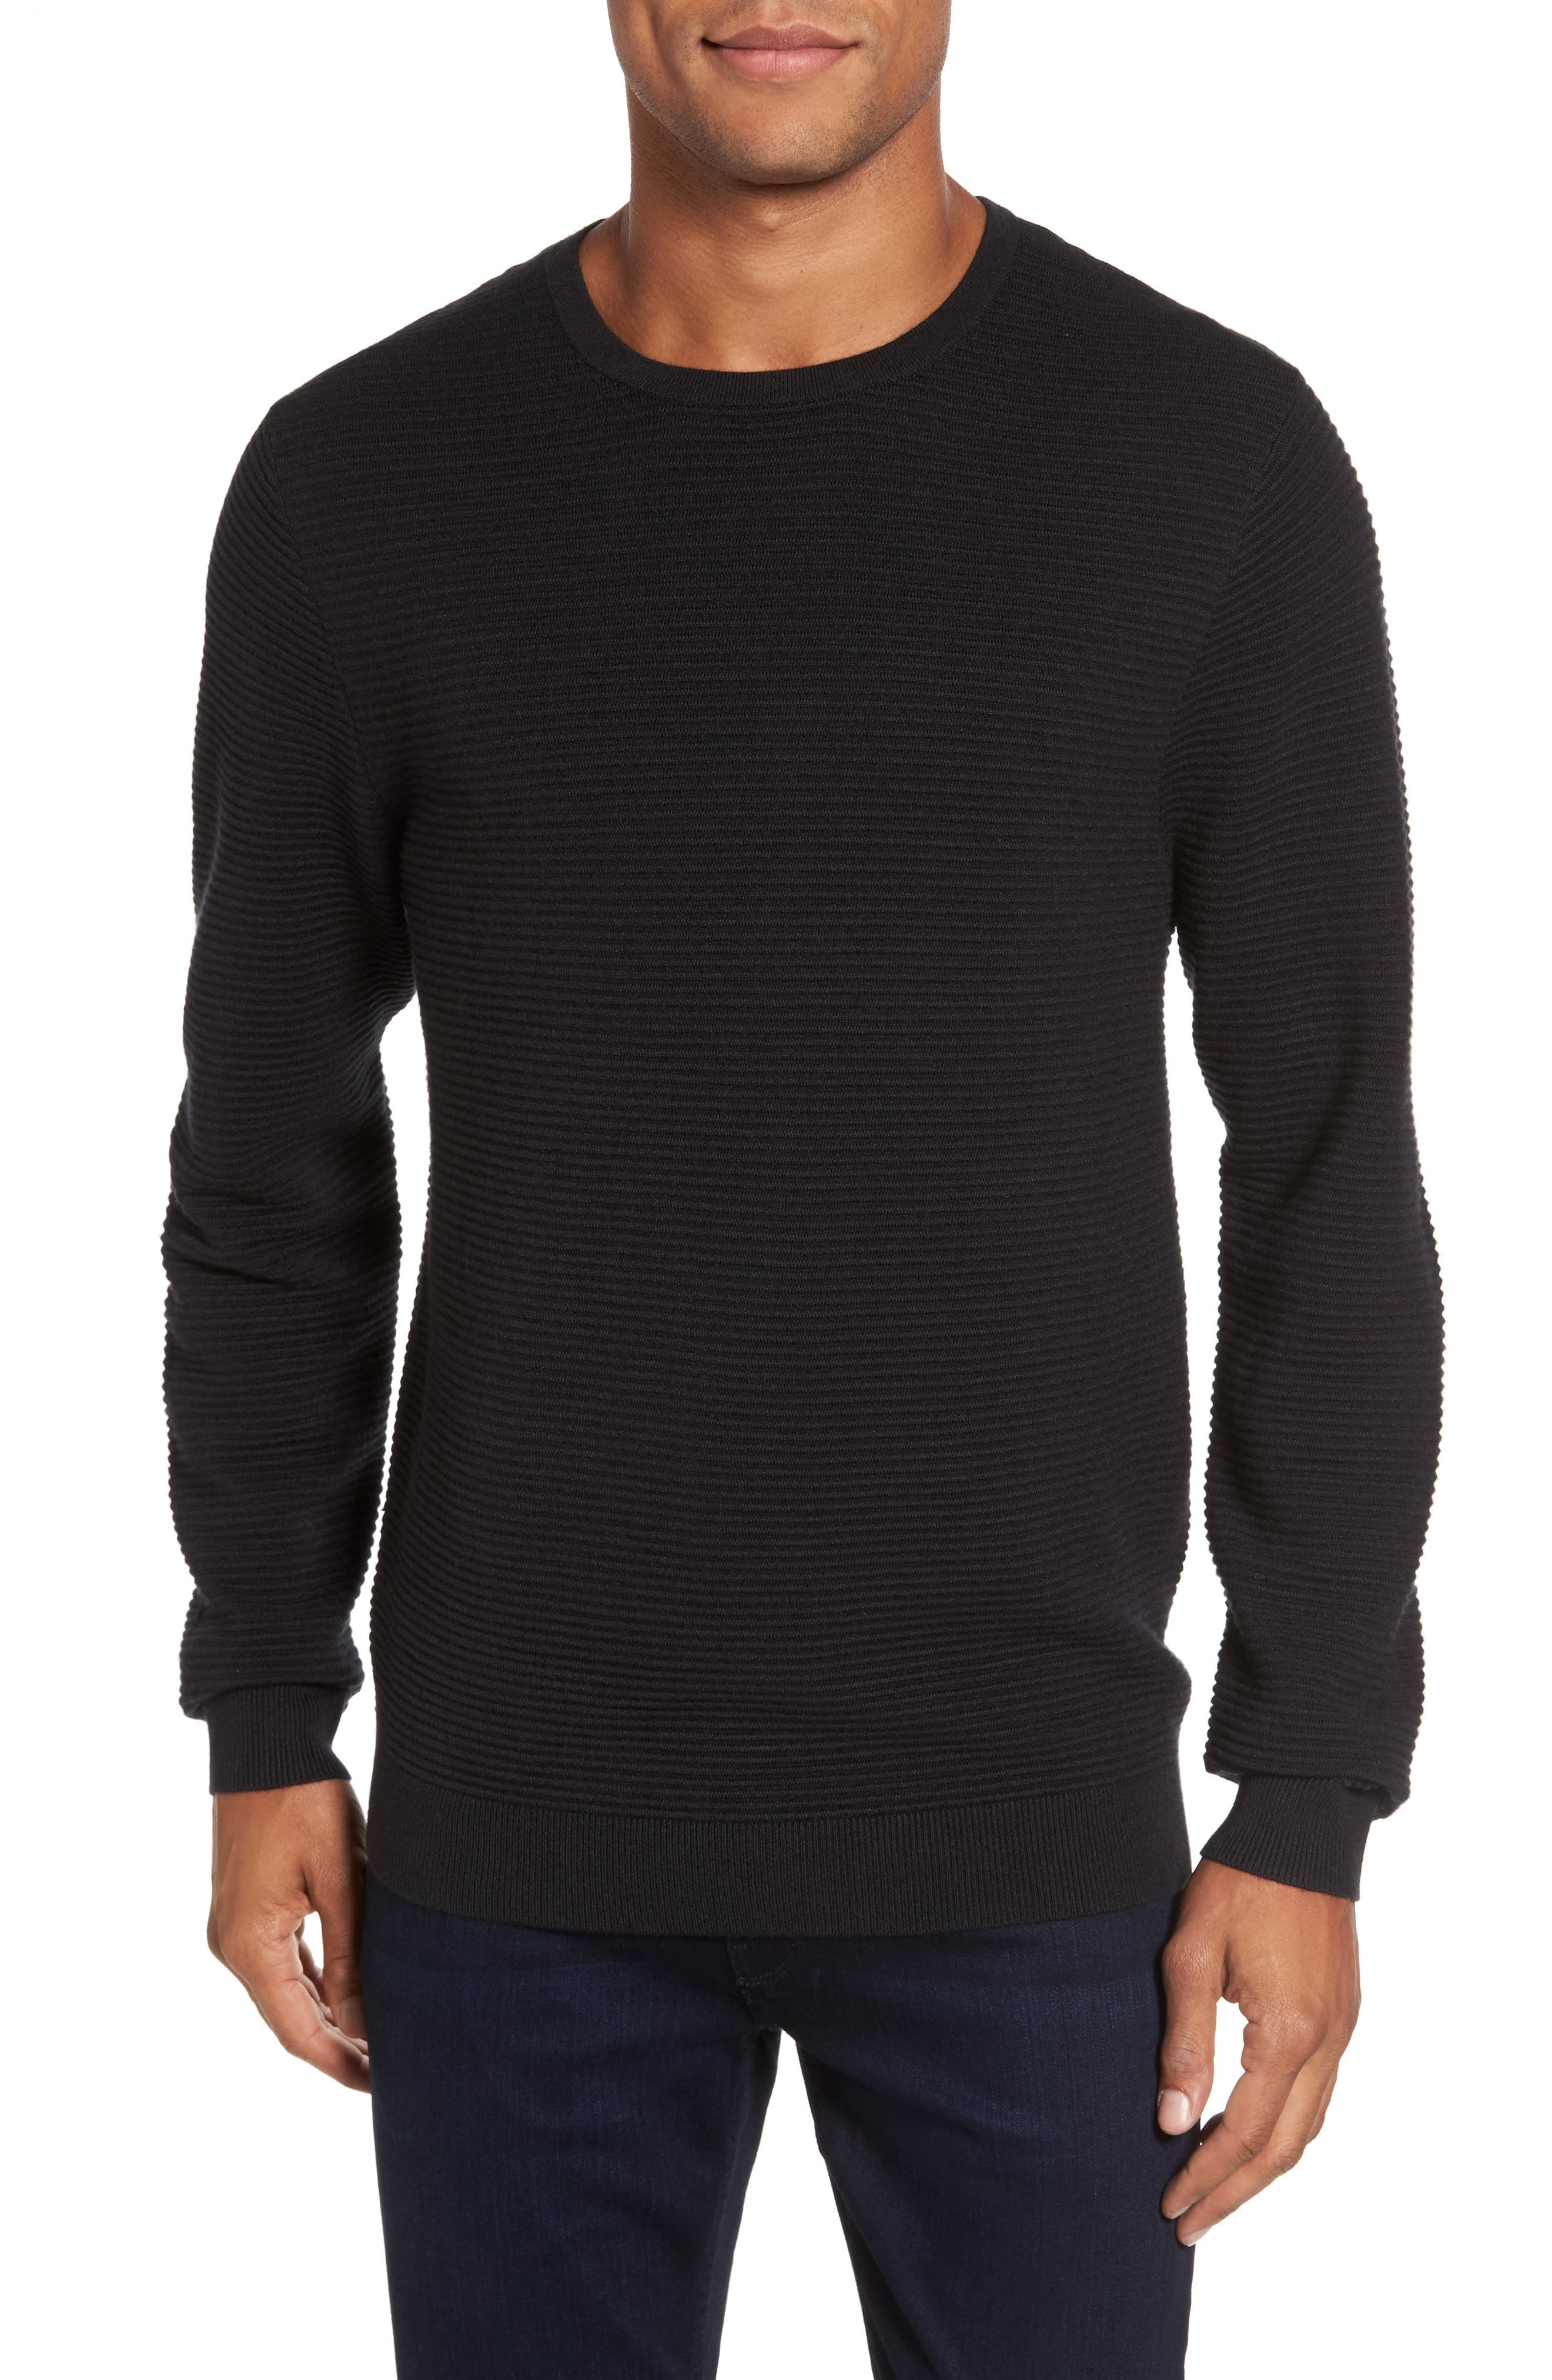 Calibrate Ottoman Ribbed Crewneck Sweater